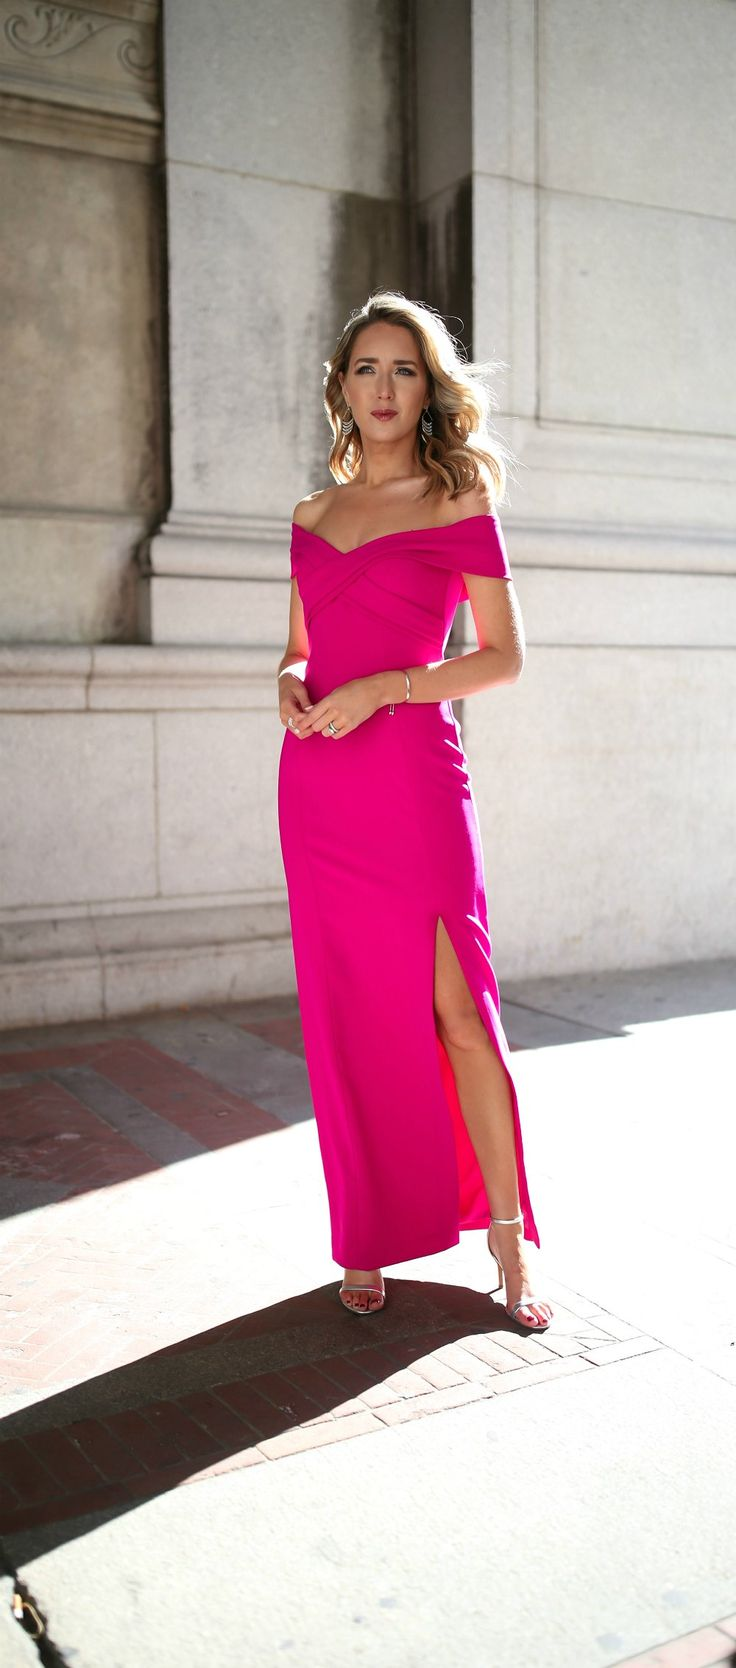 What to Wear to a Black Tie Wedding // floor length fuschia pink formal gown with off the shoulder v-neck neckline and criss cross front, classic fitted sheath silhouette, slit up leg, simple silver metallic ankle strap mid-heel sandals